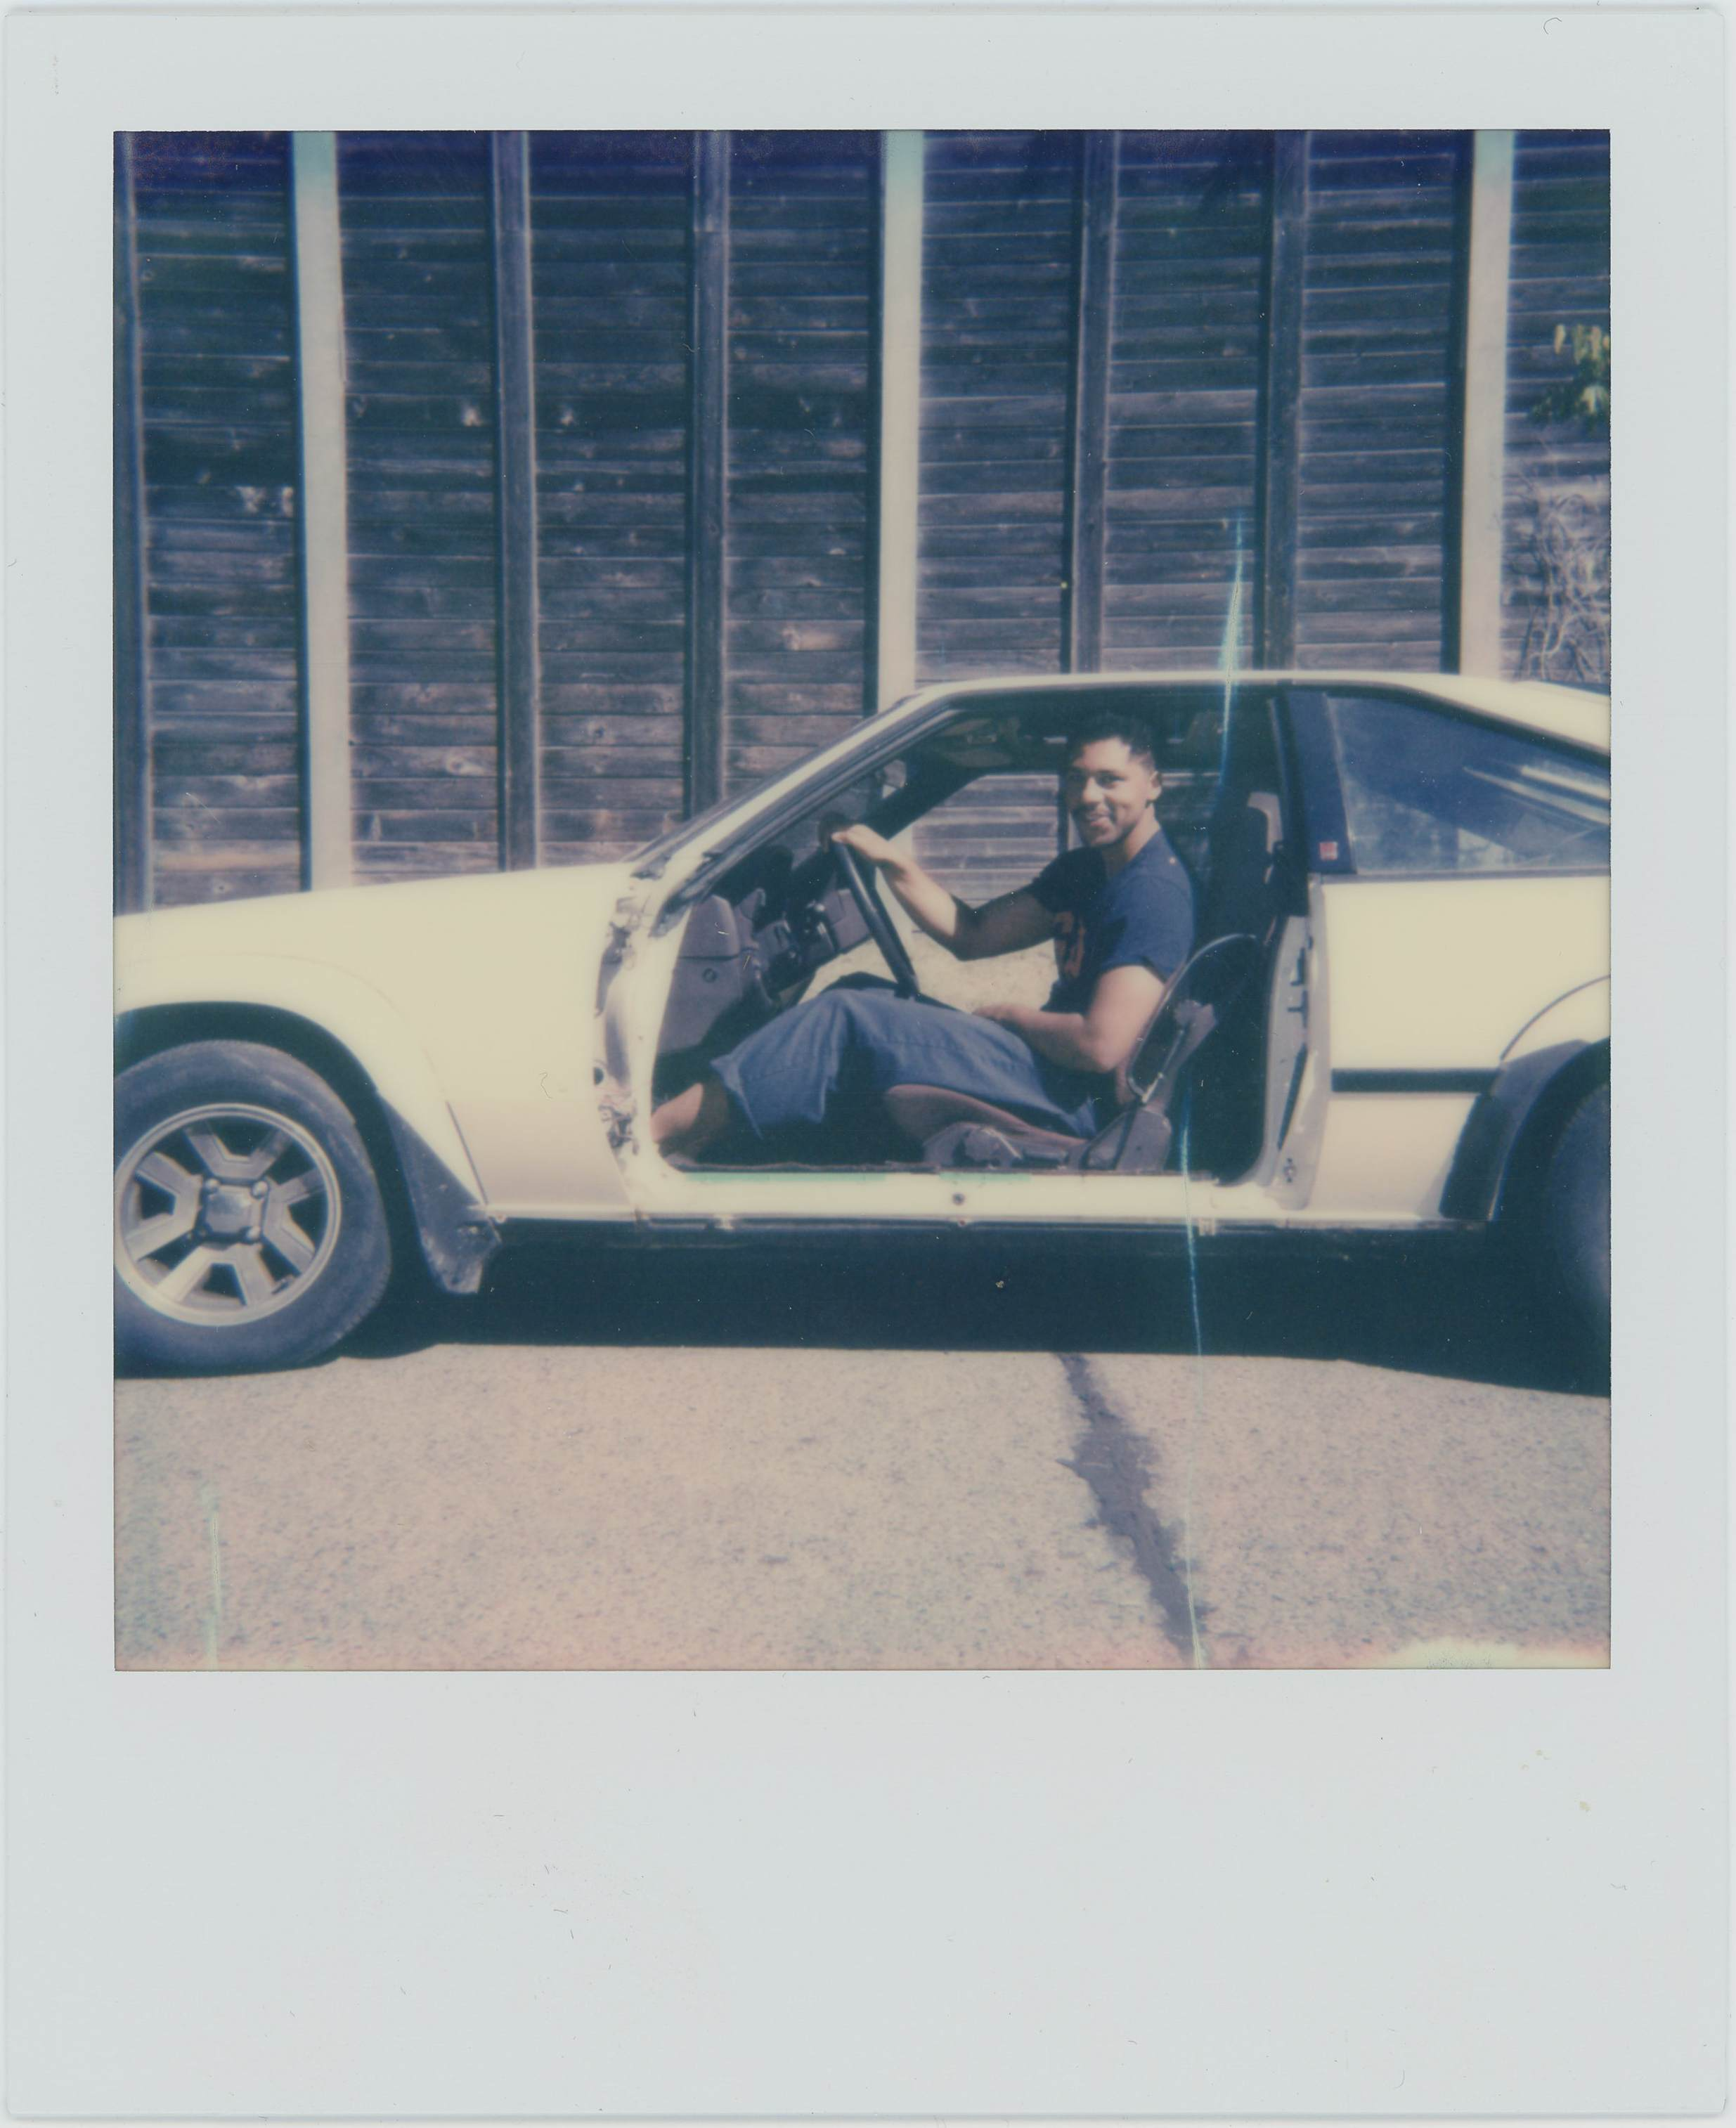 harry_polaroid.jpg